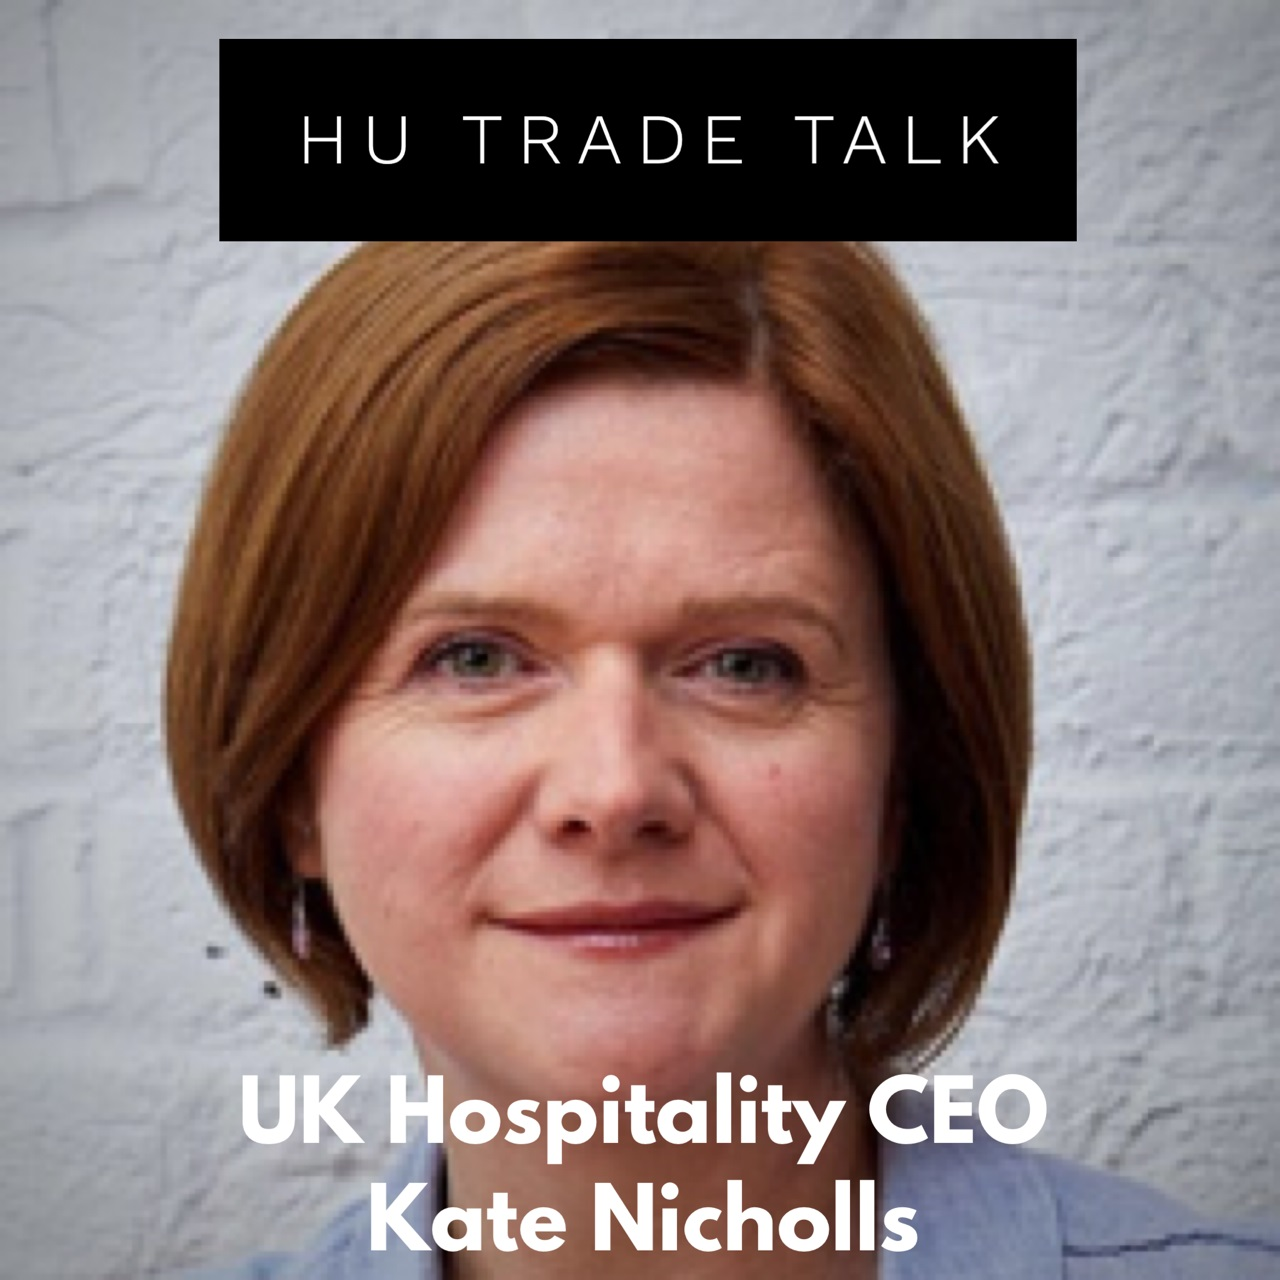 PODCAST UK Hospitality CEO Kate Nicholls